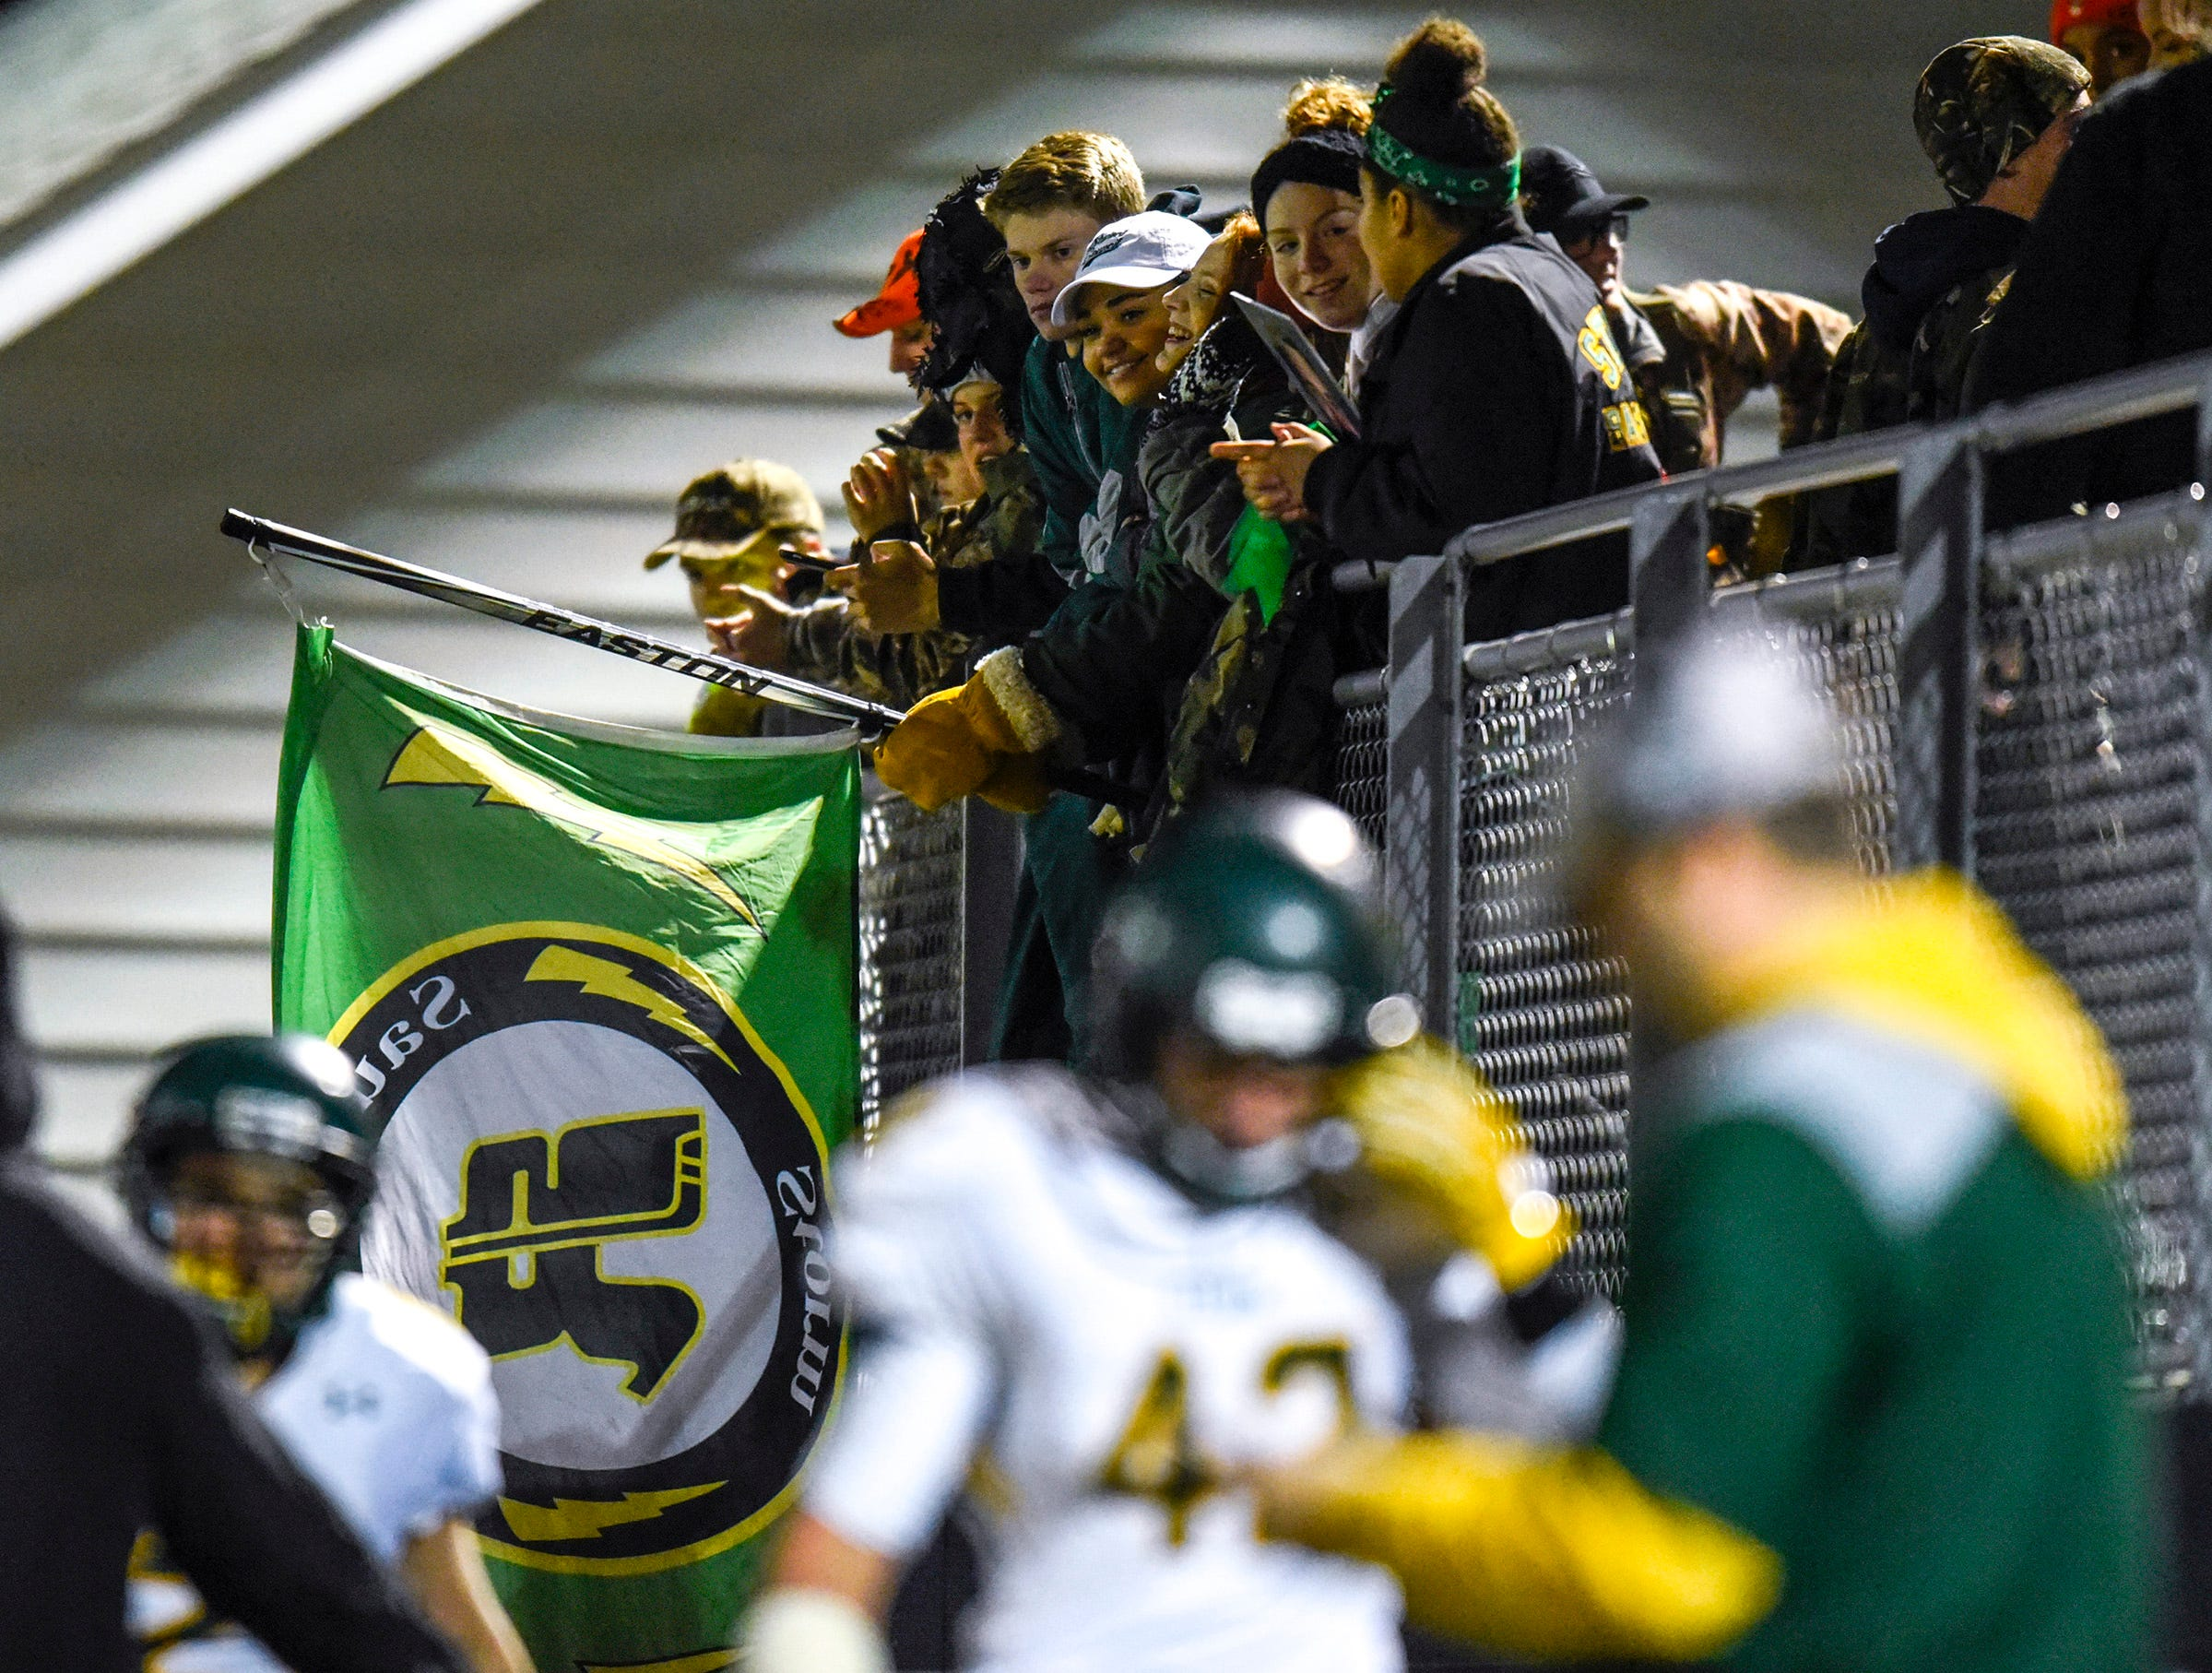 Sauk Rapids fans watch from the stands Friday, Nov. 2, in the Section 6-5A championship at Buffalo High School.